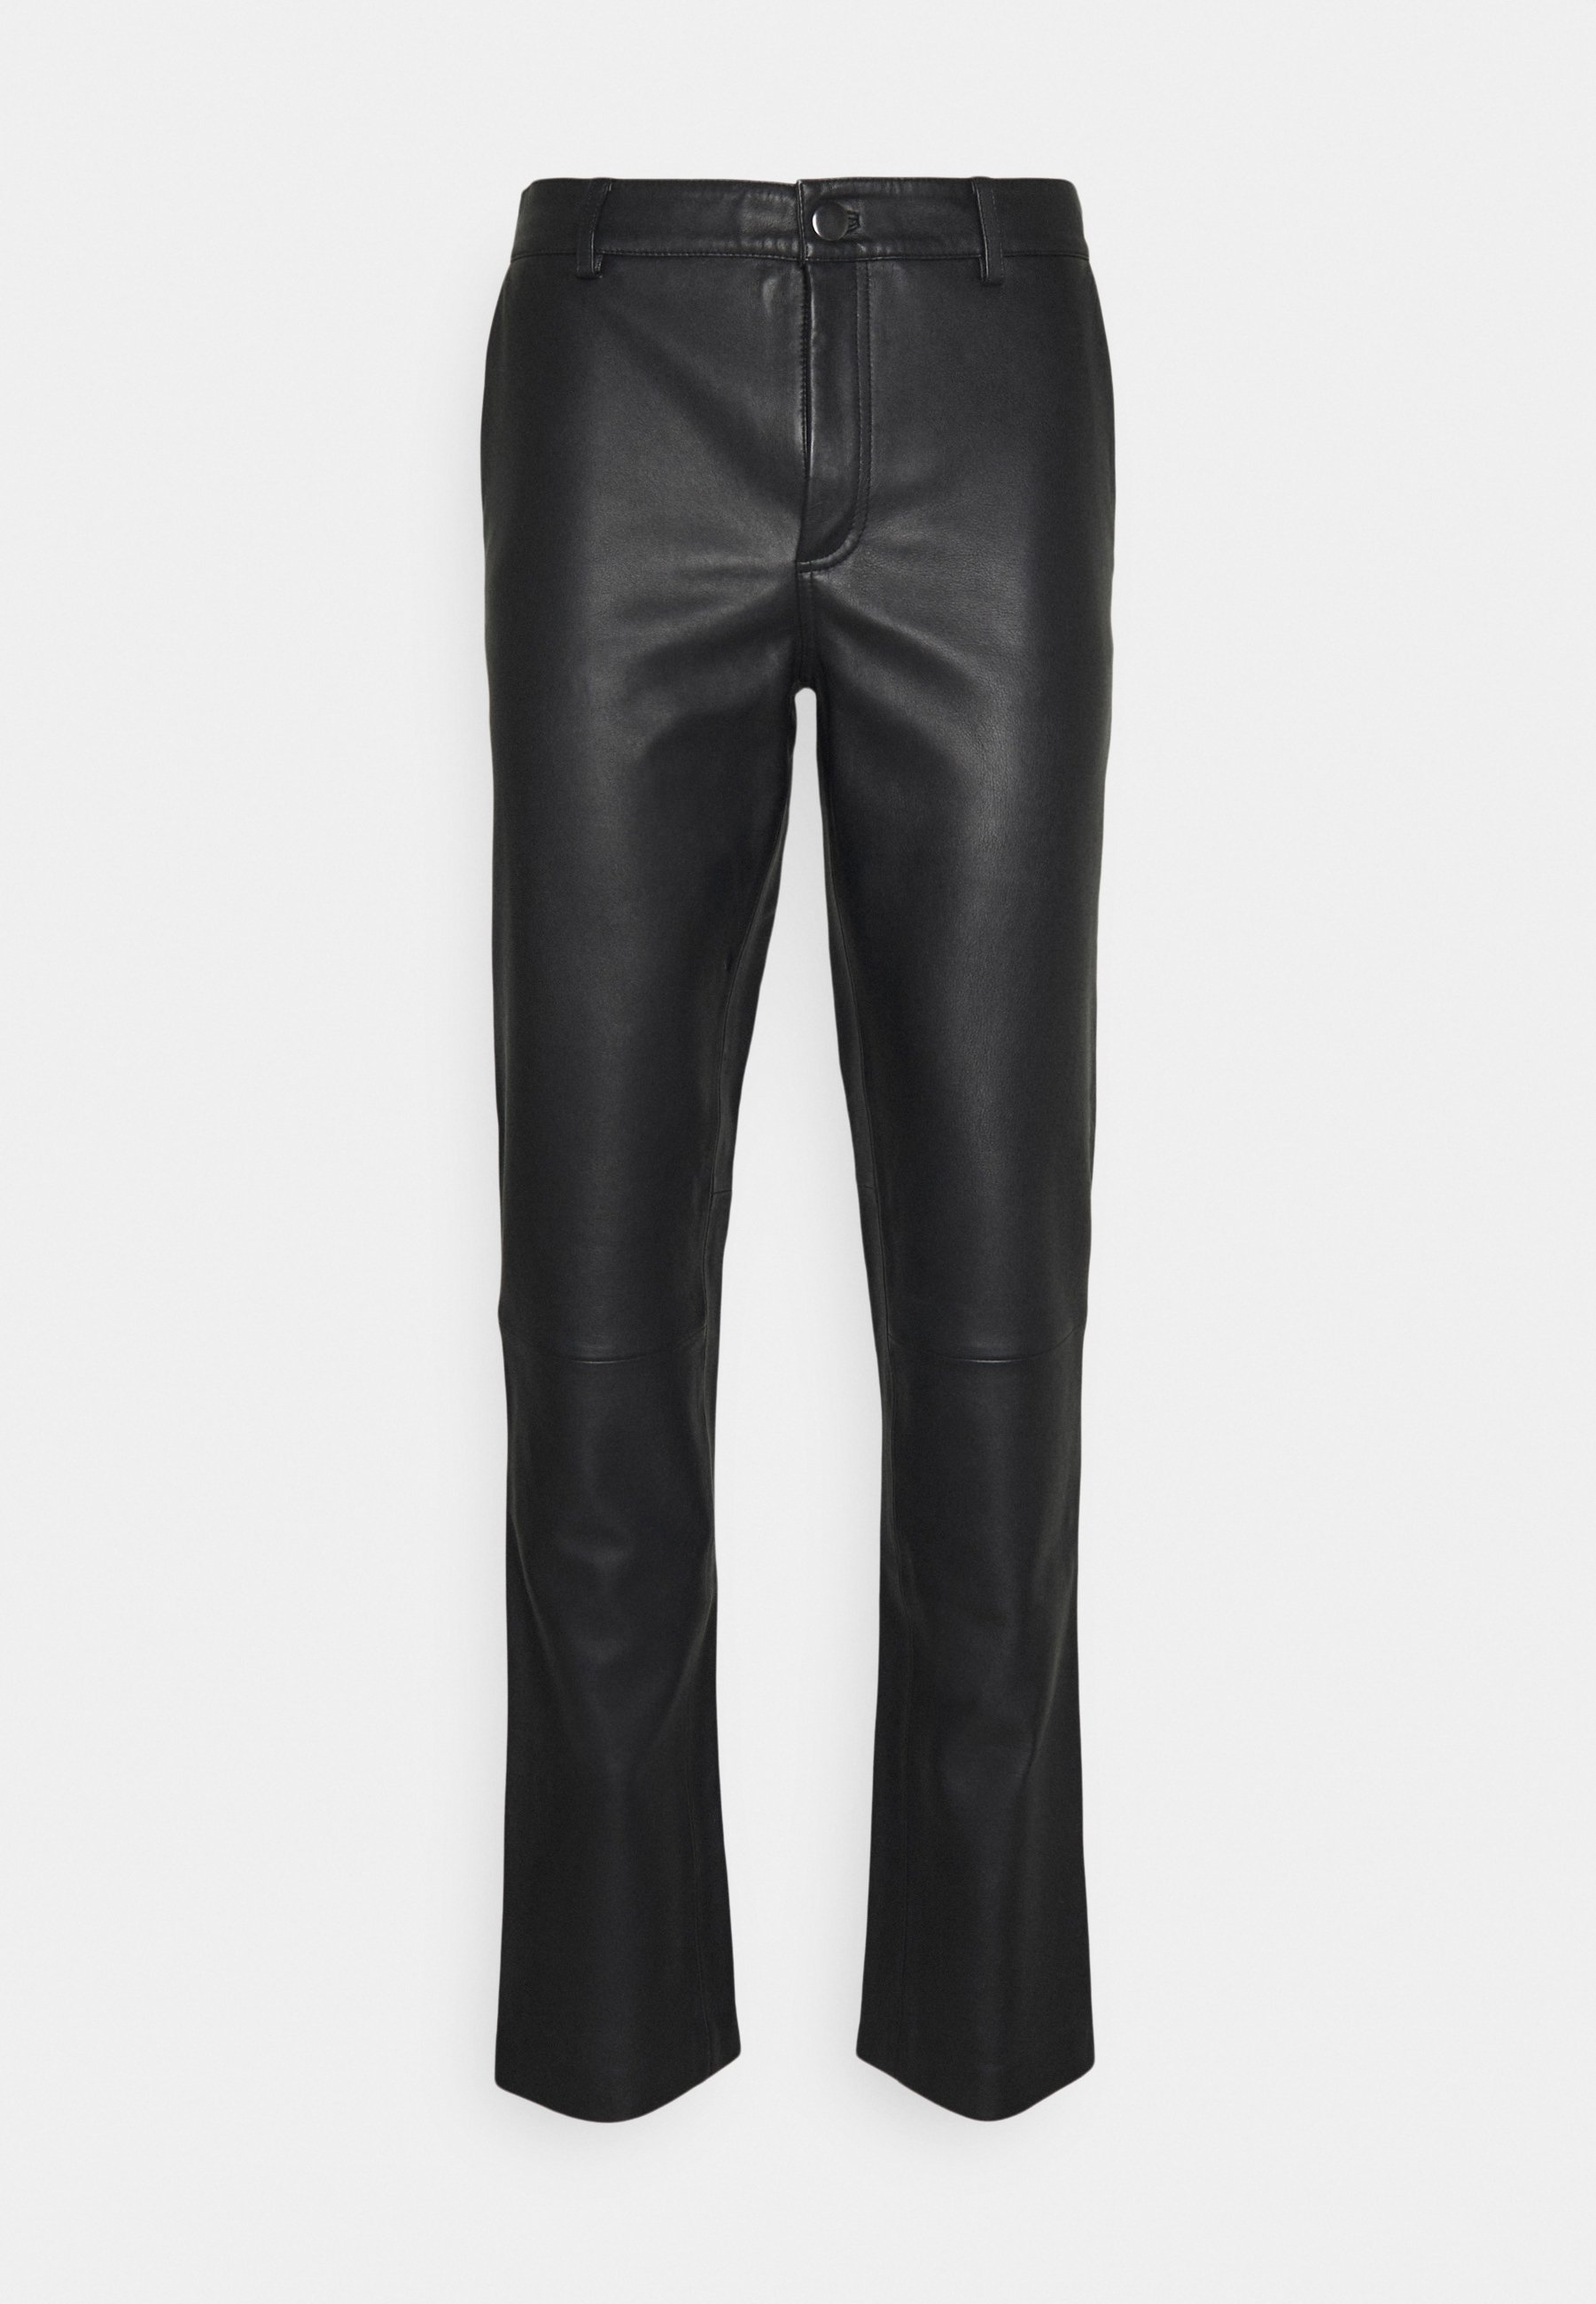 Men FITTED TOUSERS - Leather trousers